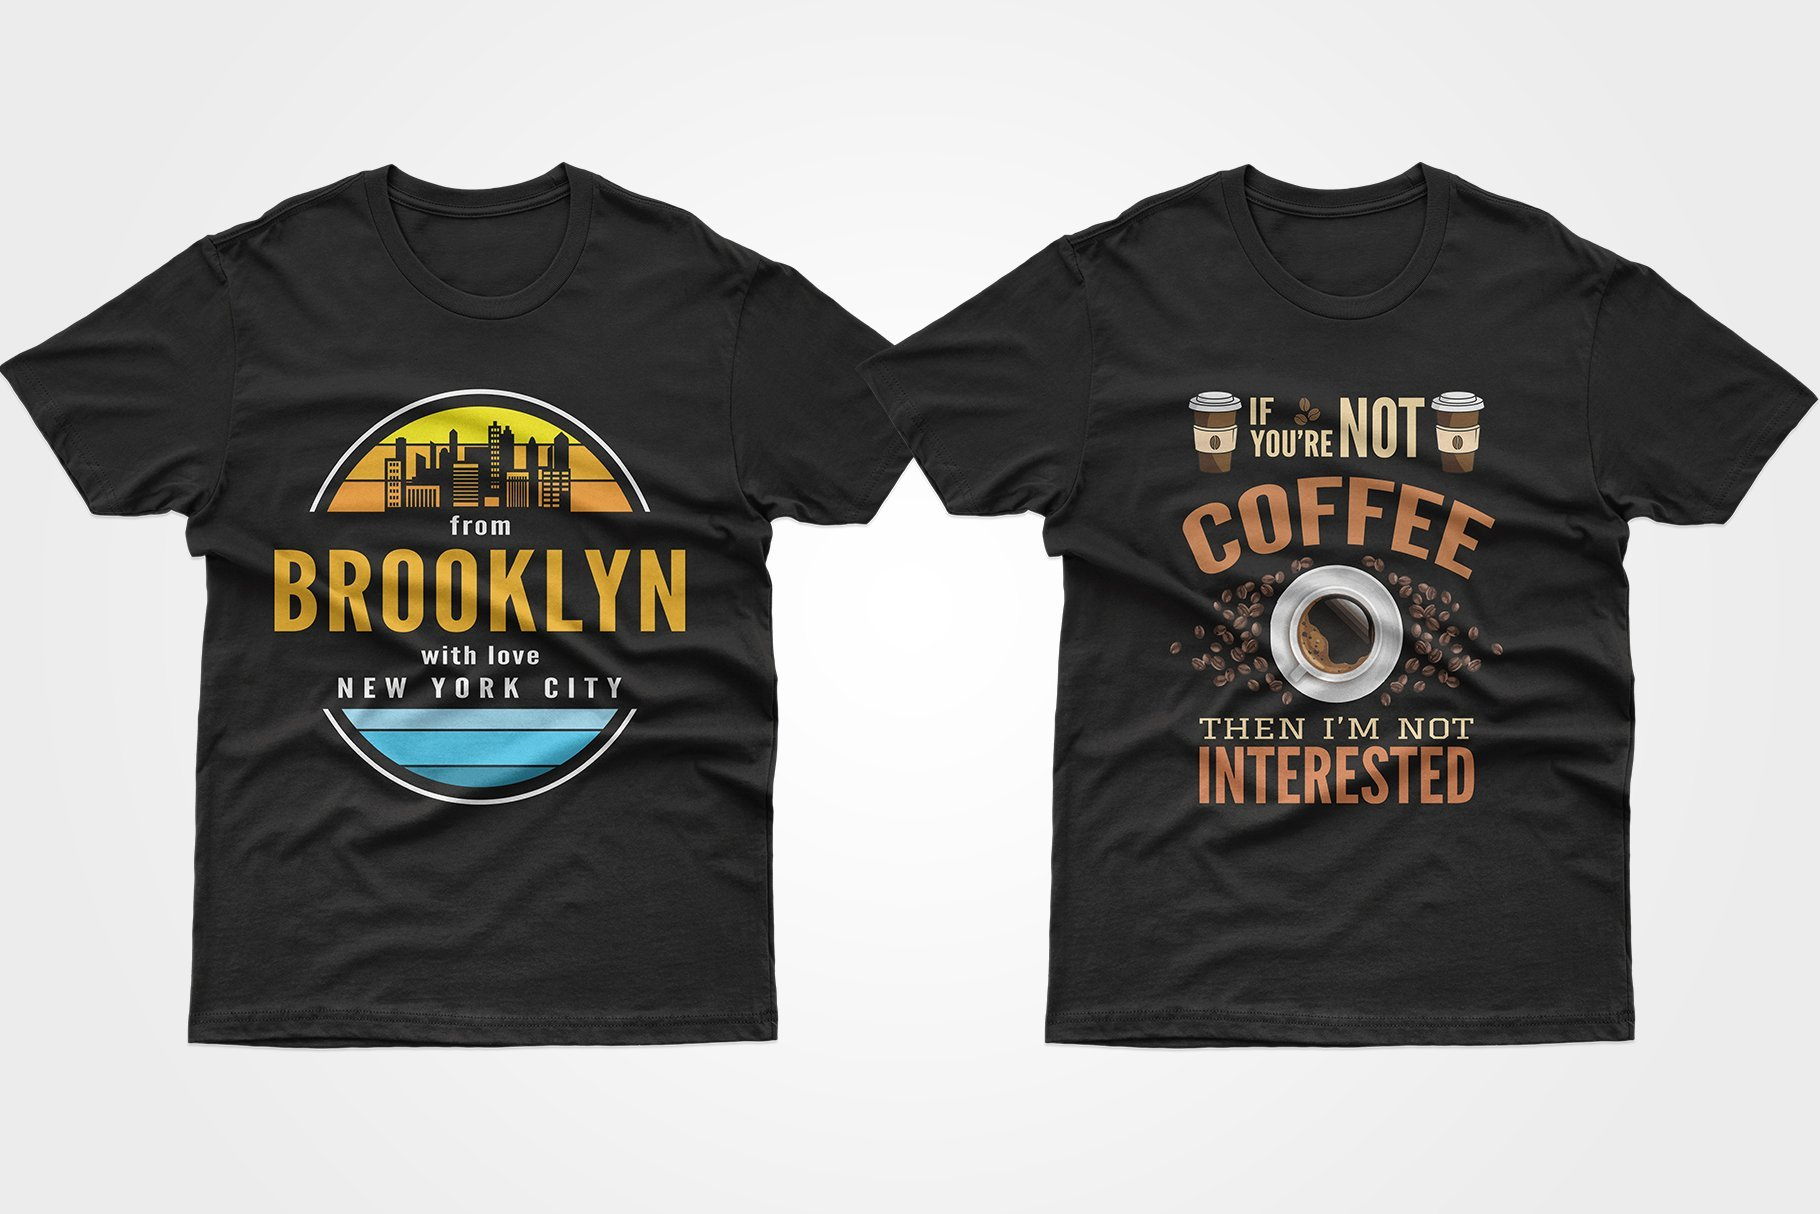 Two black T-shirts - from New York borough and coffee.